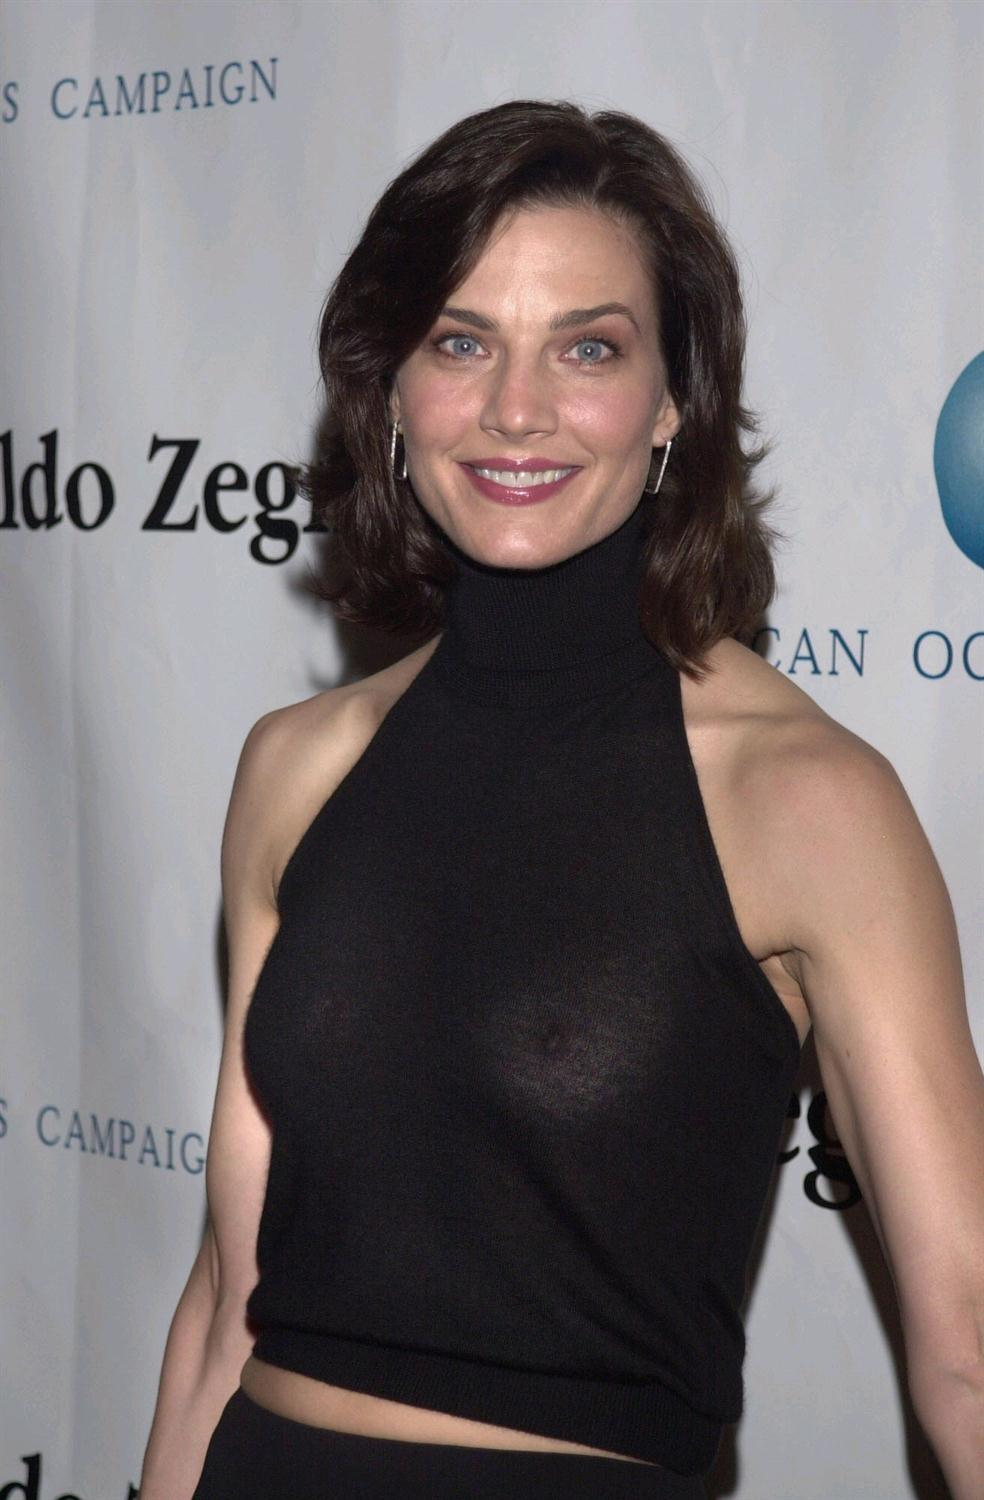 Terry Farrell - breasts